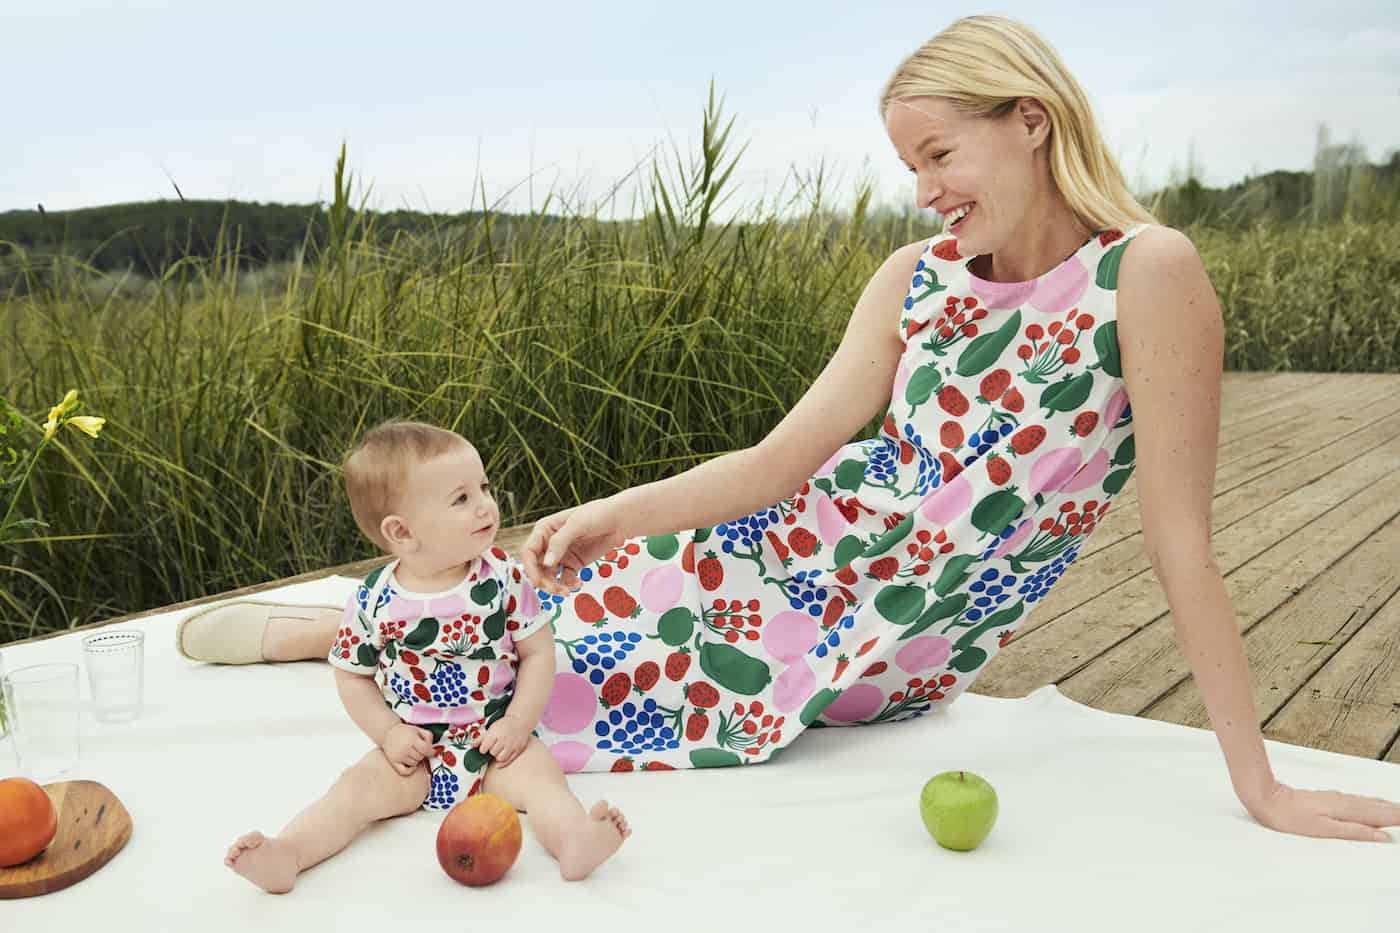 finnische Sommerleben, Marimekko and UNIQLO announce a new spearhead collaboration collection – an ode to Finnish summer living